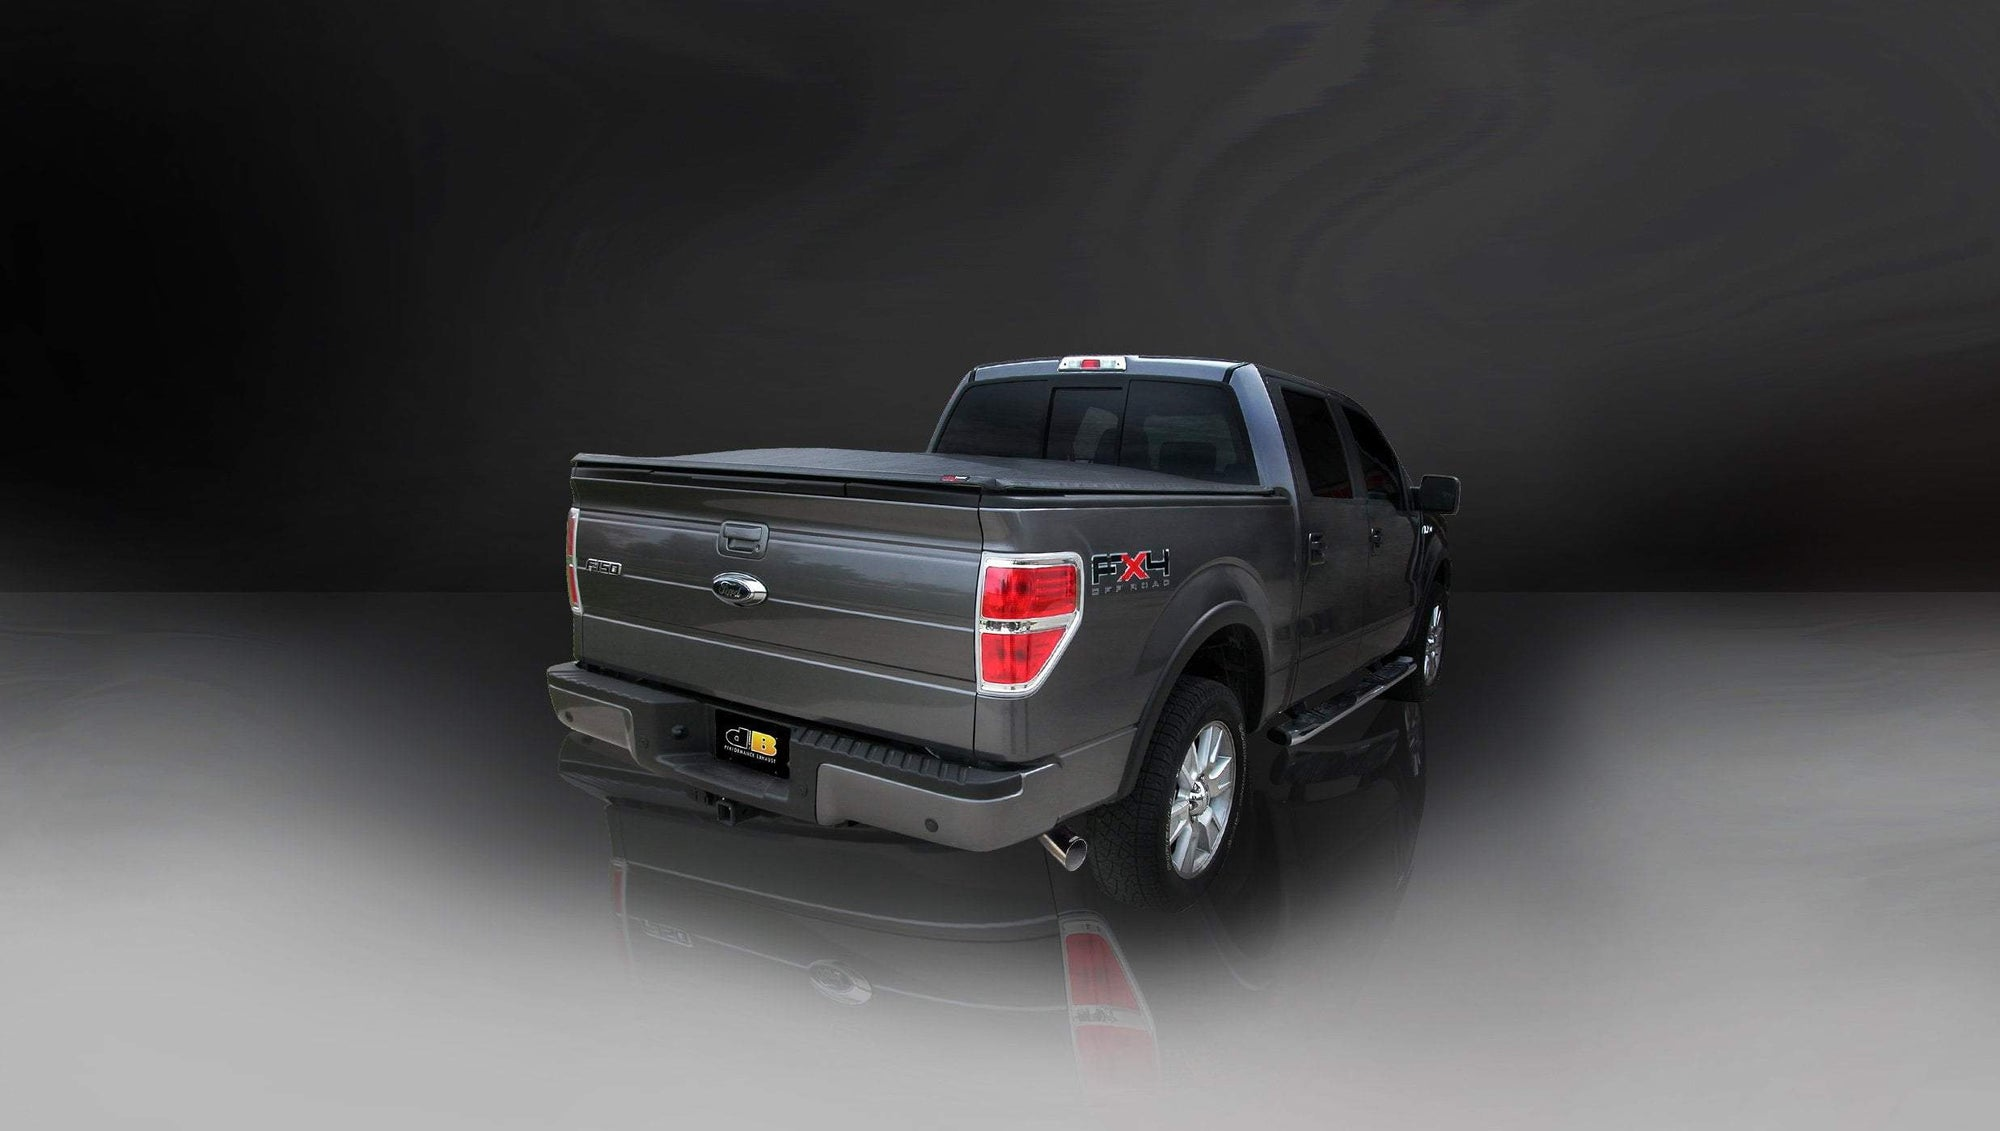 "dB Cat-Back Exhaust Polished / Sport / Single Side - Single 4in Slash Cut 2004 Ford F-150 3.0"" Single Side Exit Catback Exhaust System with 4.0"" Tip (24360) Sport Sound Level"